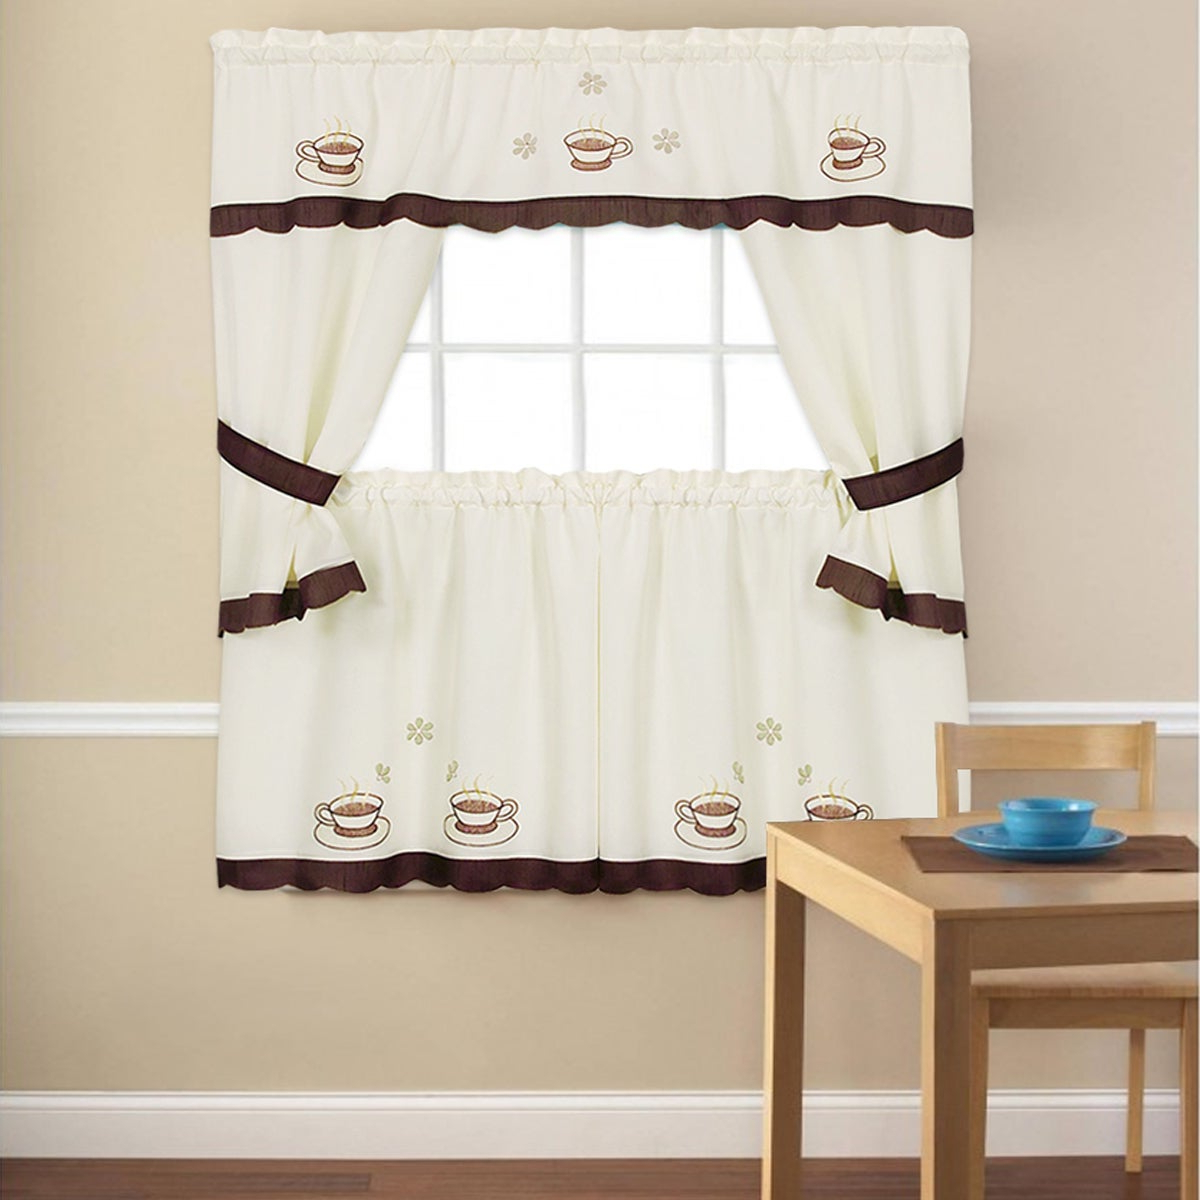 Coffee Drinks Embroidered Window Valances And Tiers Within Current Embroidered 'coffee Cup' 5 Piece Kitchen Curtain Set (View 10 of 20)